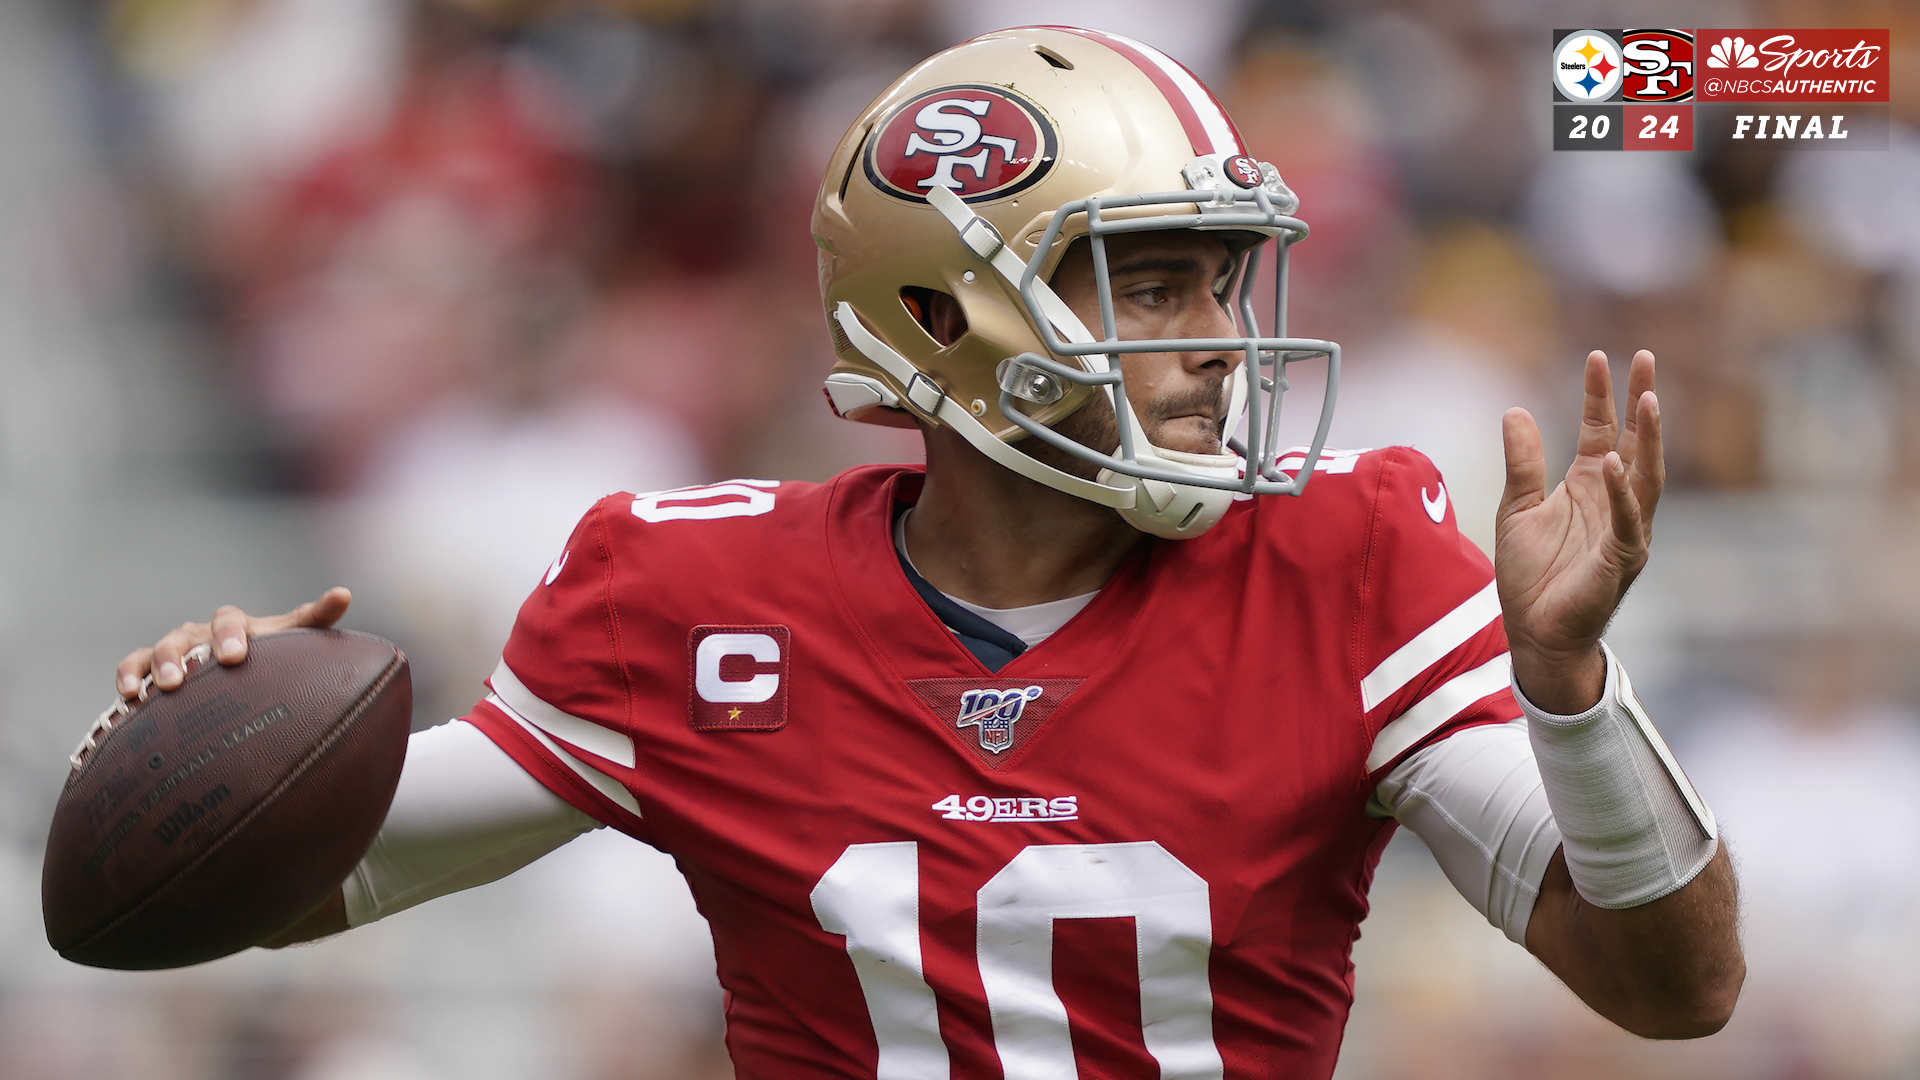 Matt Maiocco explains how Jimmy Garoppolo played 'finest' game as 49er